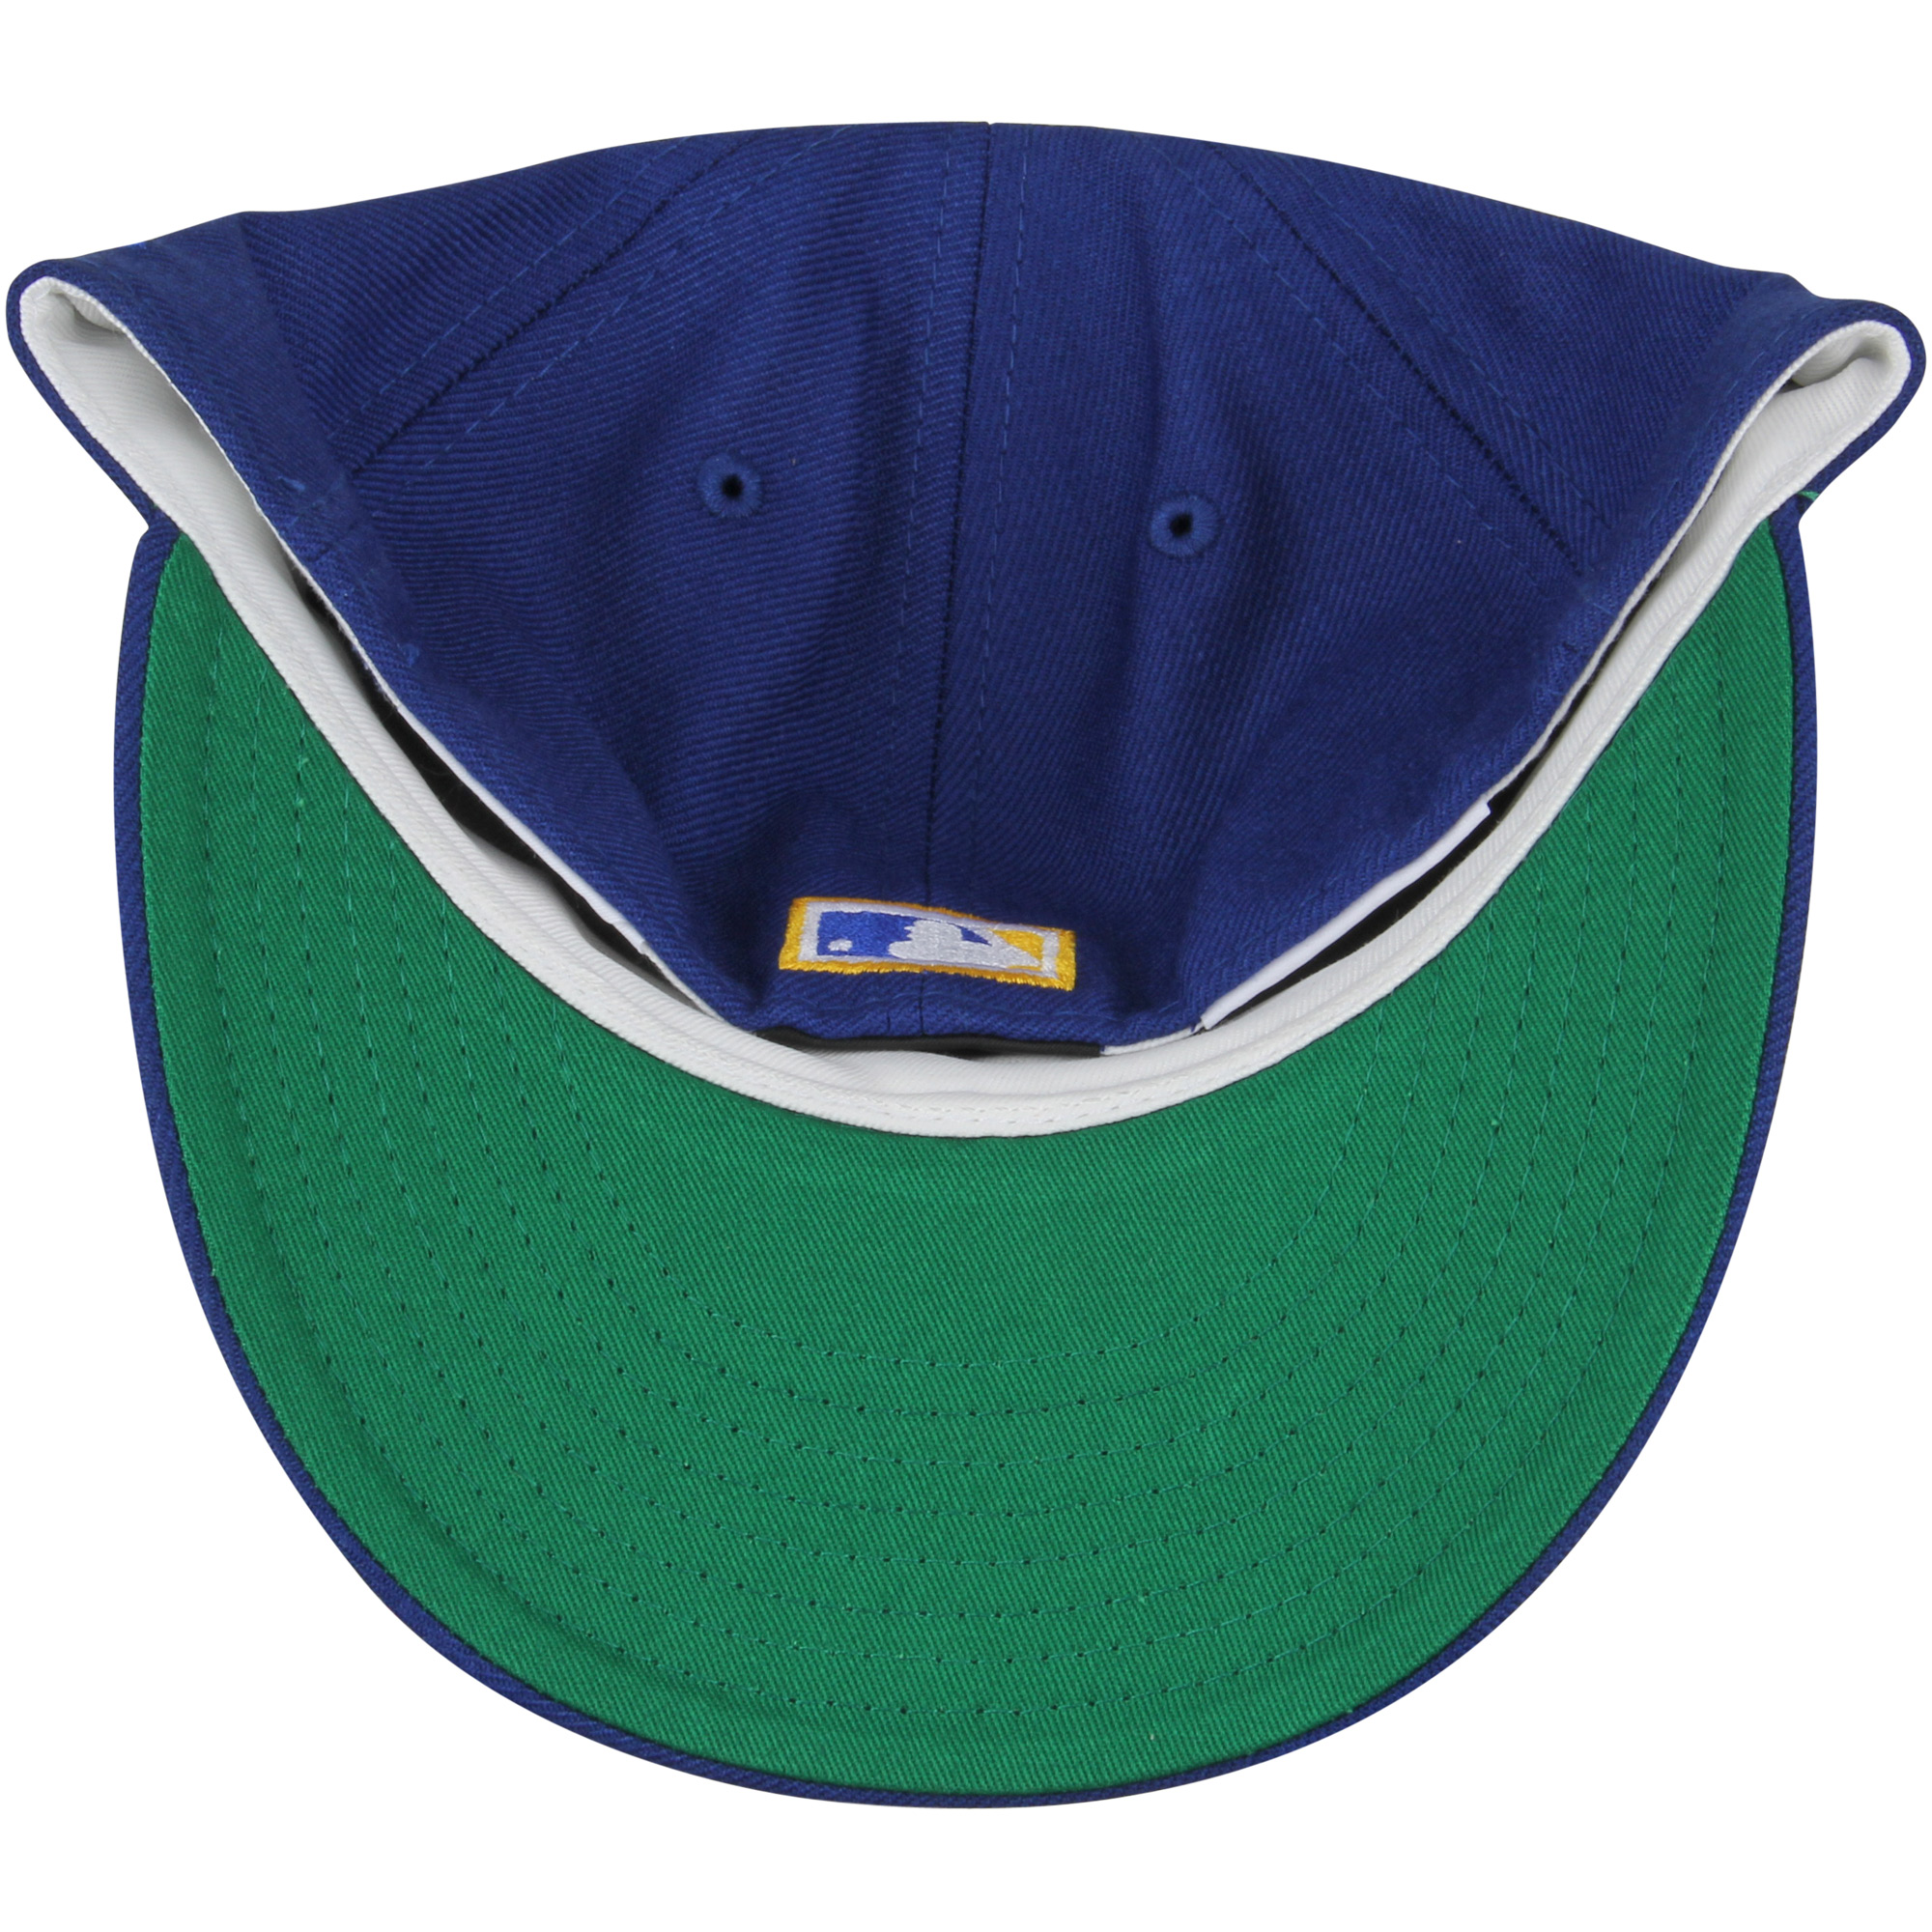 new styles f19c2 ea66b Seattle Mariners New Era Cooperstown Collection Vintage Fit 59FIFTY Fitted  Hat - Royal - Walmart.com